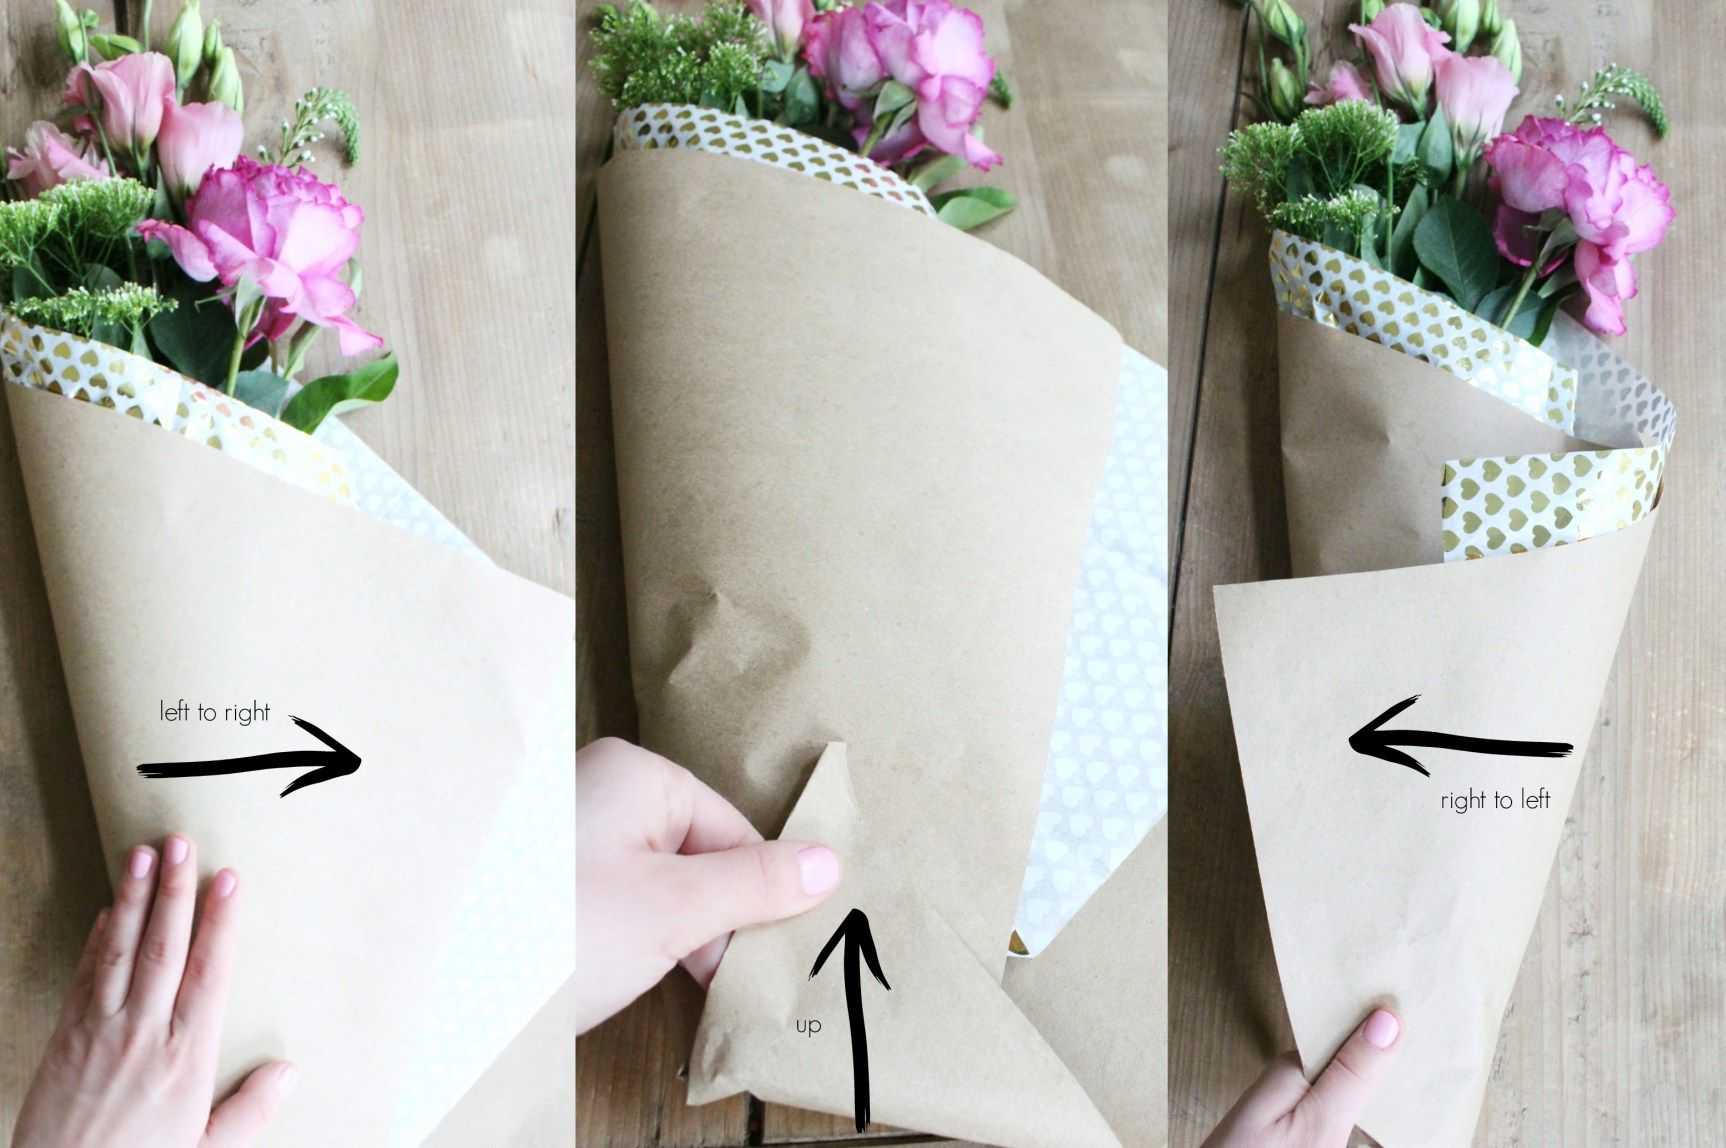 DIY Paper Wrapped Bouquet DIY and crafts Wrap flowers